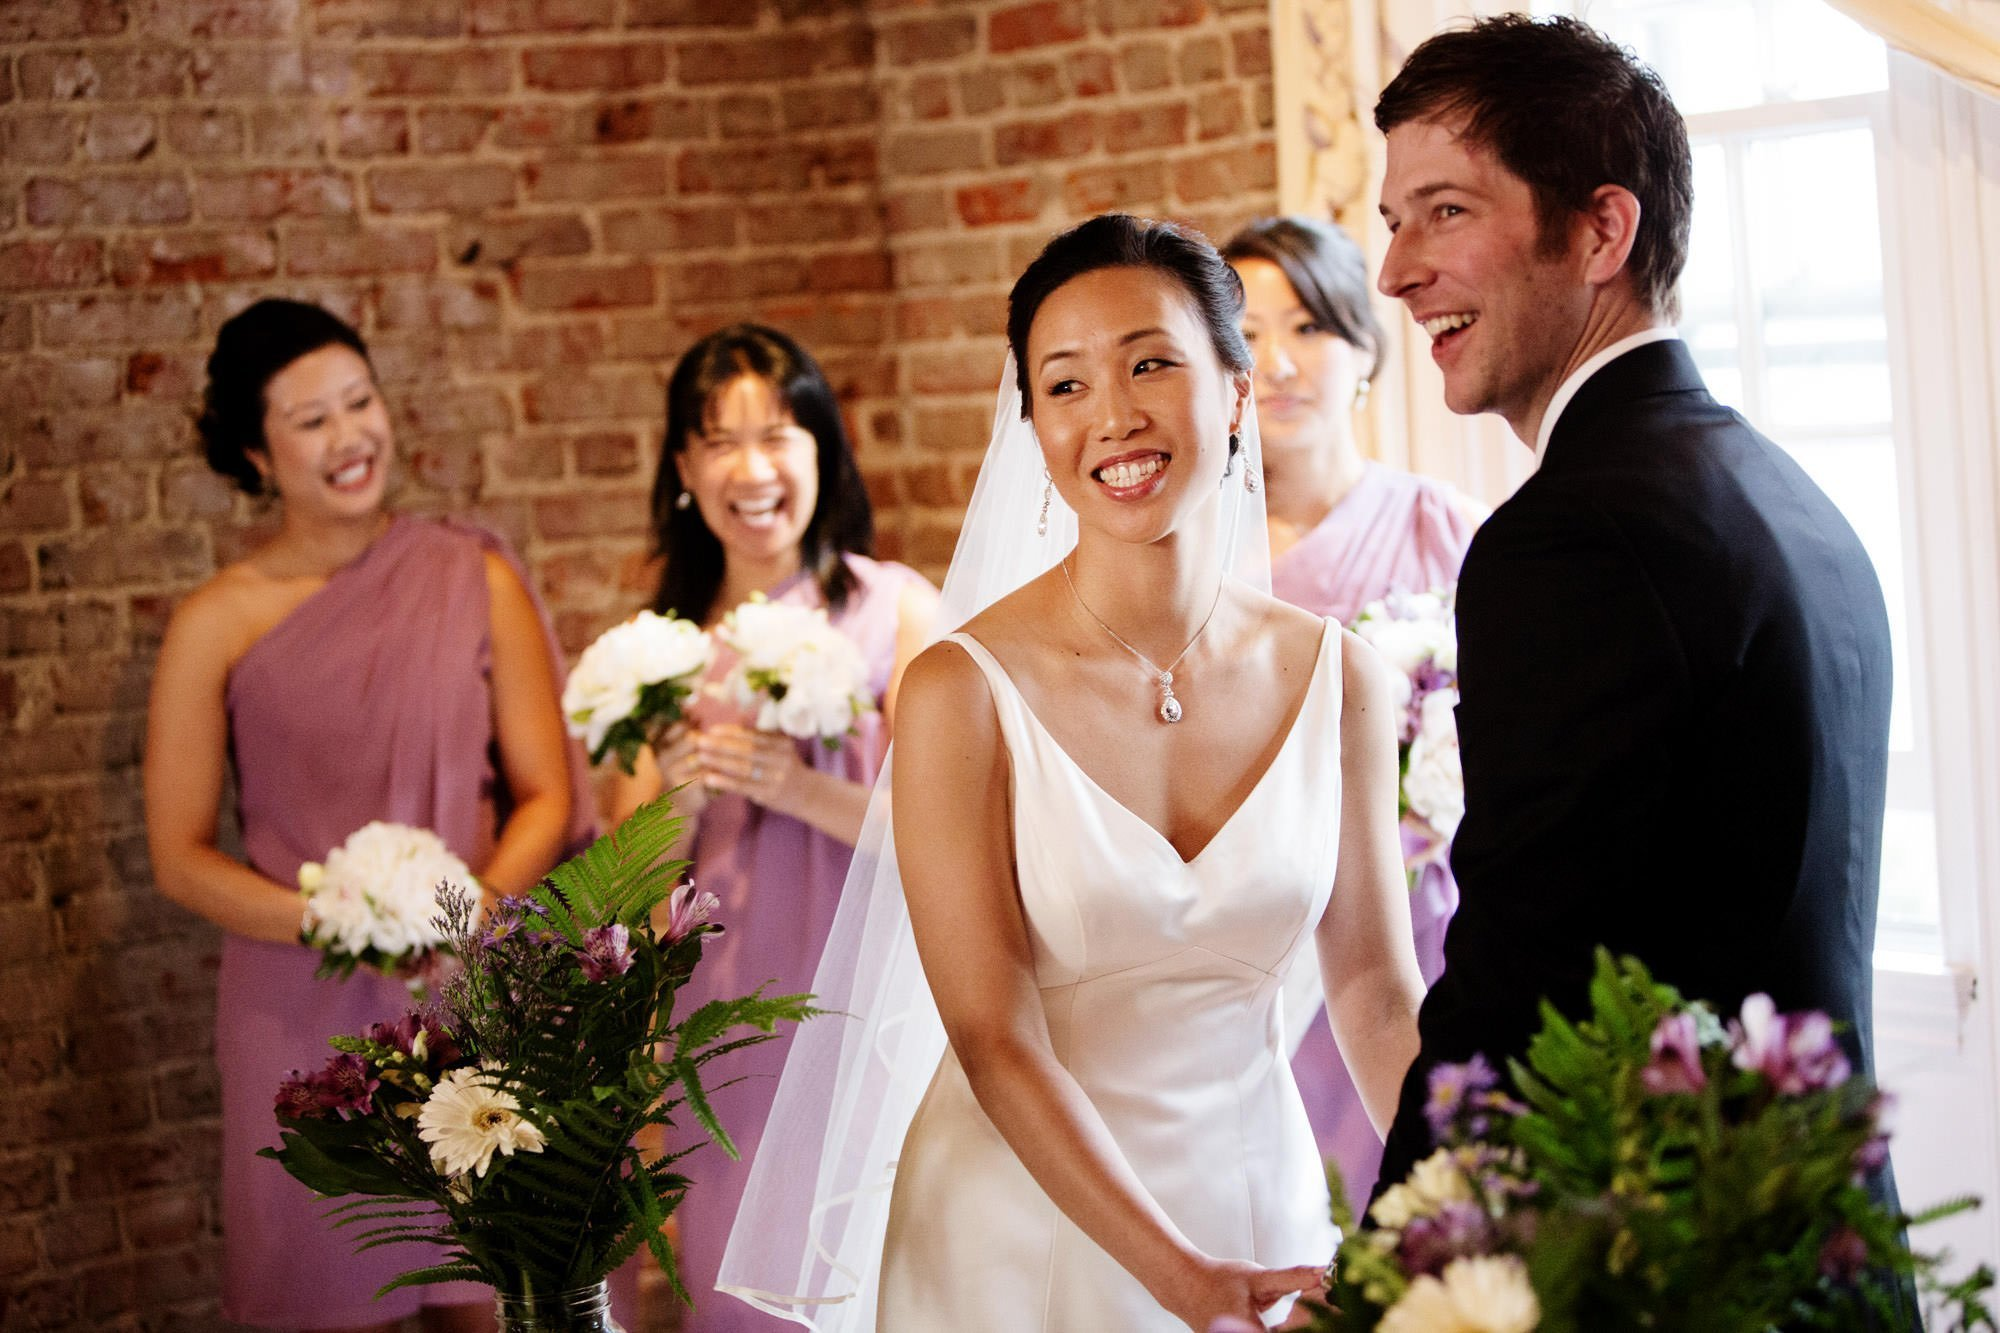 The couple laughs during their wedding ceremony at Epic Yoga Studio.